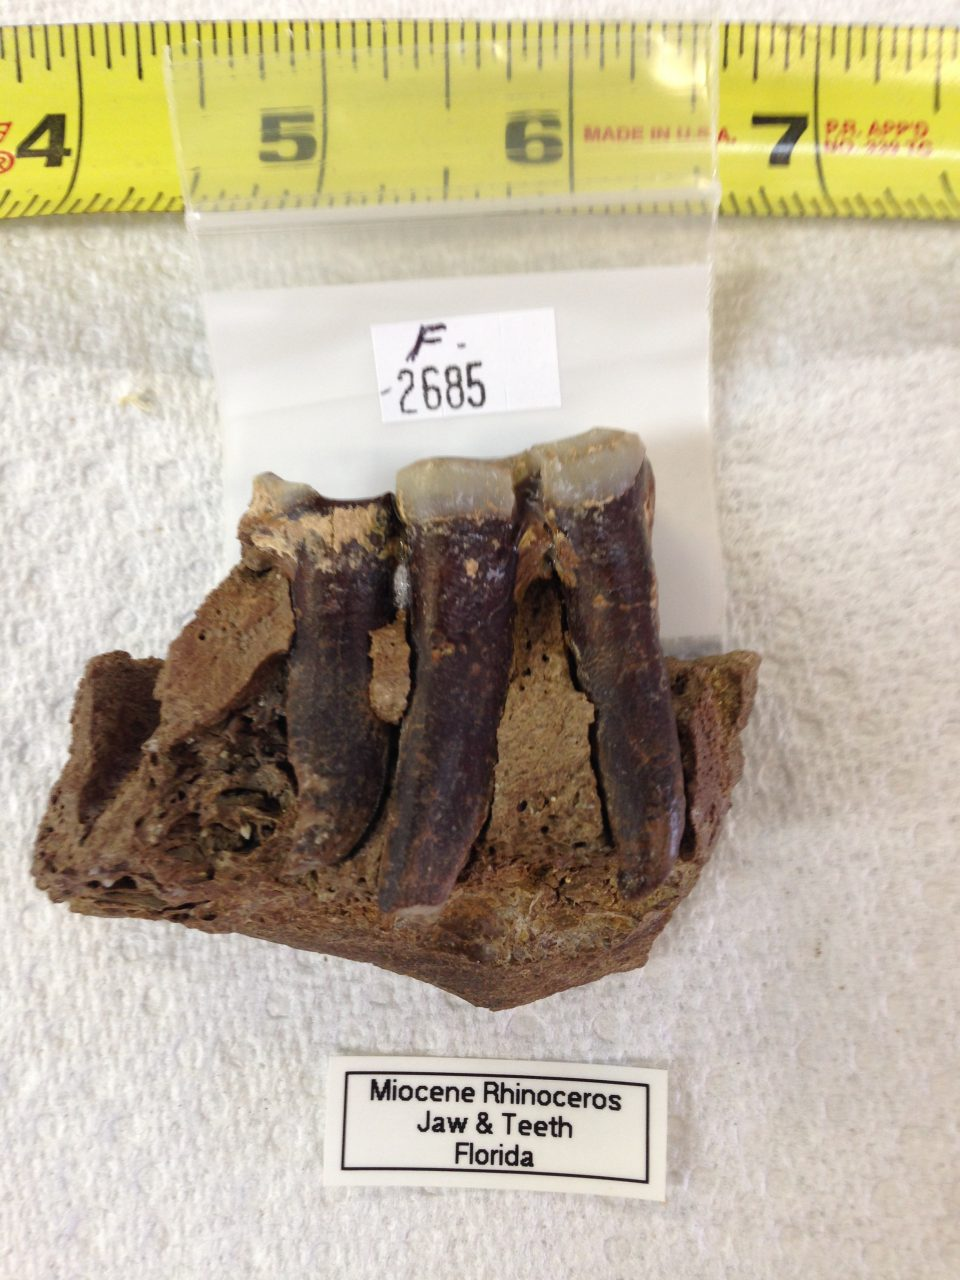 Rhinoceros Jaw Section with 1 1/2 Teeth Menoceras from very Animal from Florida | Fossils & Artifacts for Sale | Paleo Enterprises | Fossils & Artifacts for Sale